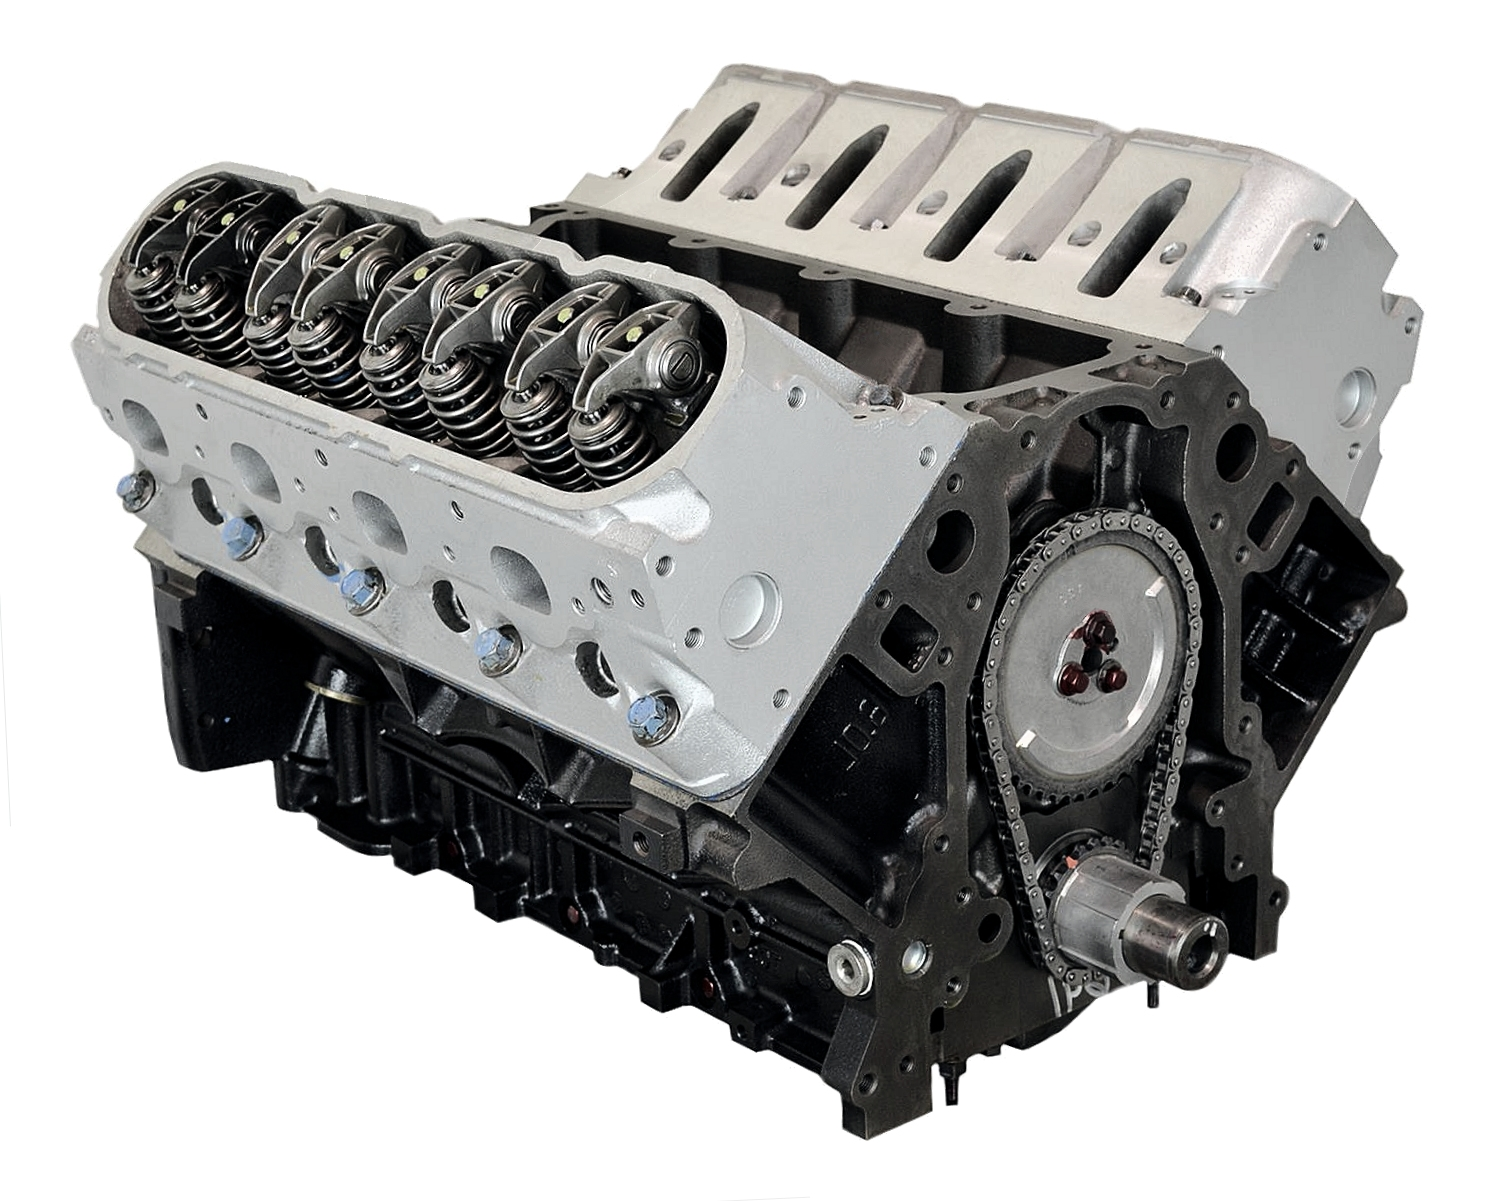 Chevy Express 1500 - 5.3 L59 Engine - 2007 (Vin Code: Z)